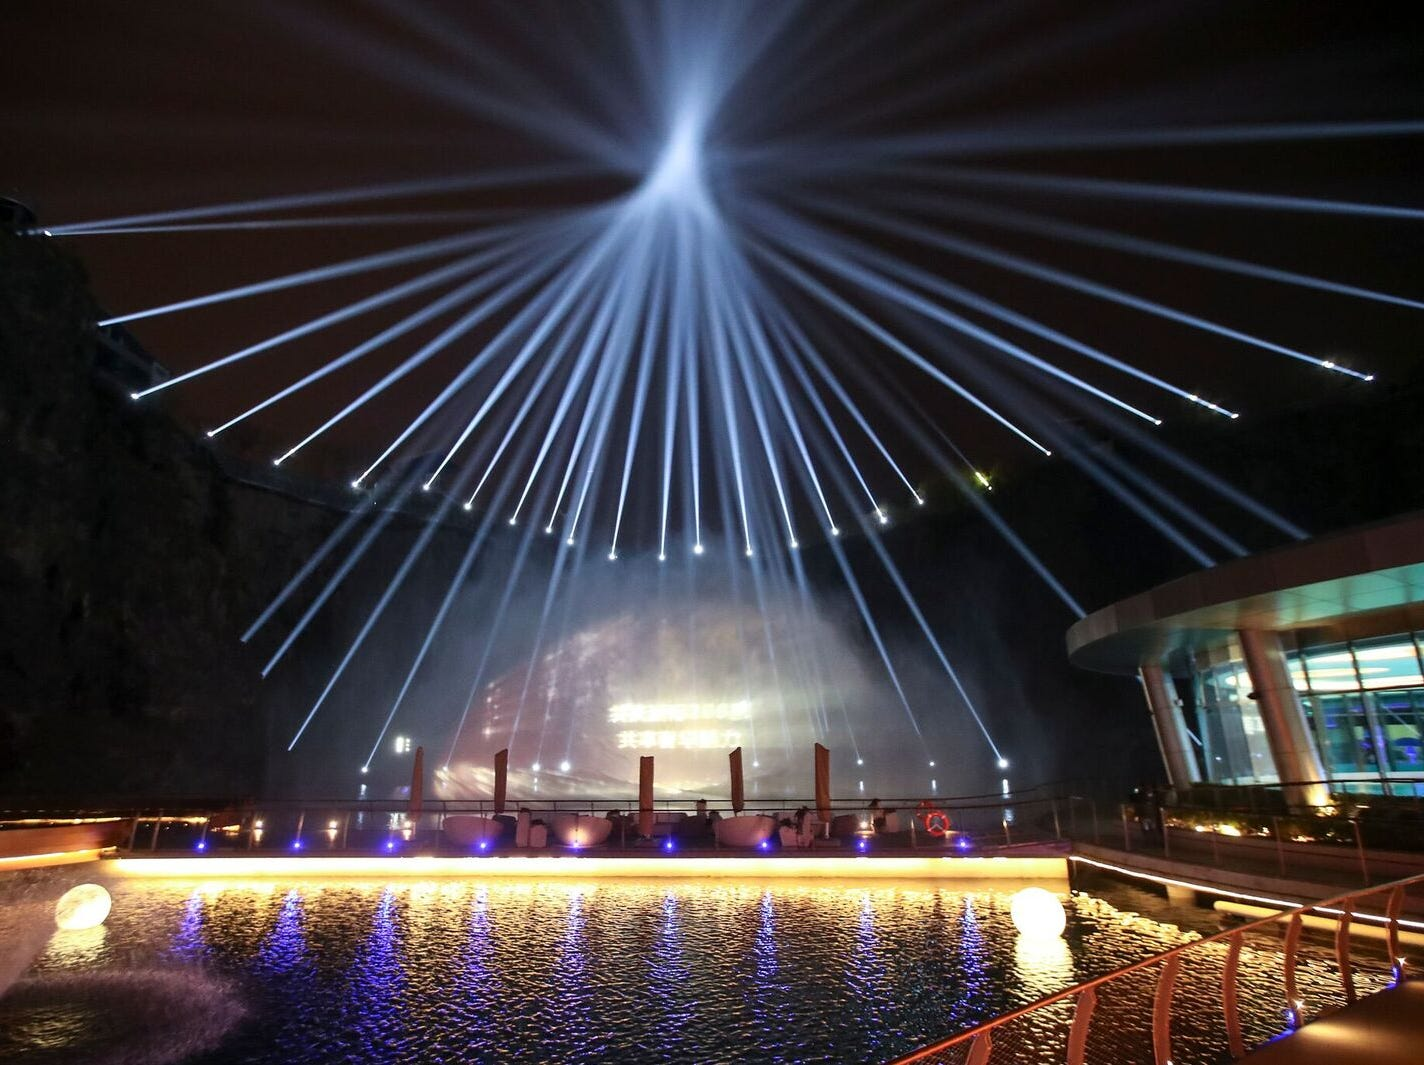 Companies can emblazon their logo in lights on the water streams for special events, and each evening, guests clamor to their balconies to snap the best photos of this Las Vegas-style performance.